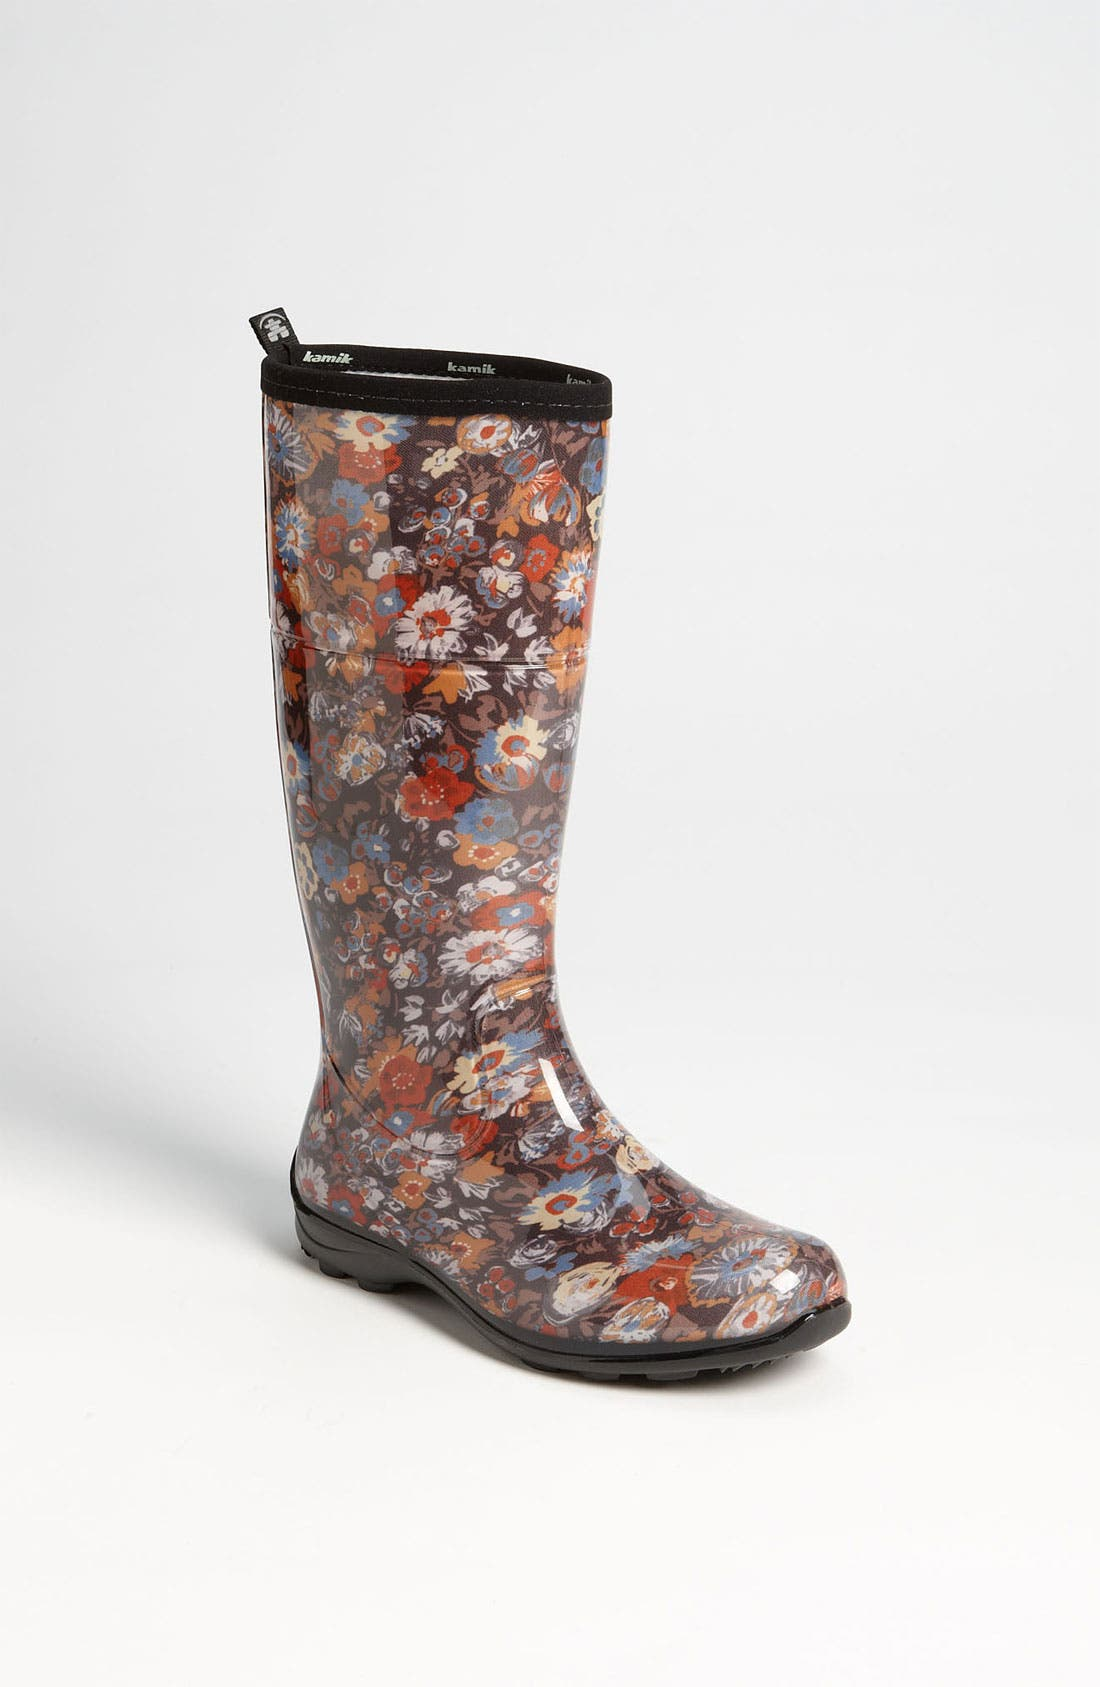 Alternate Image 1 Selected - Kamik 'Margo' Rain Boot (Women)